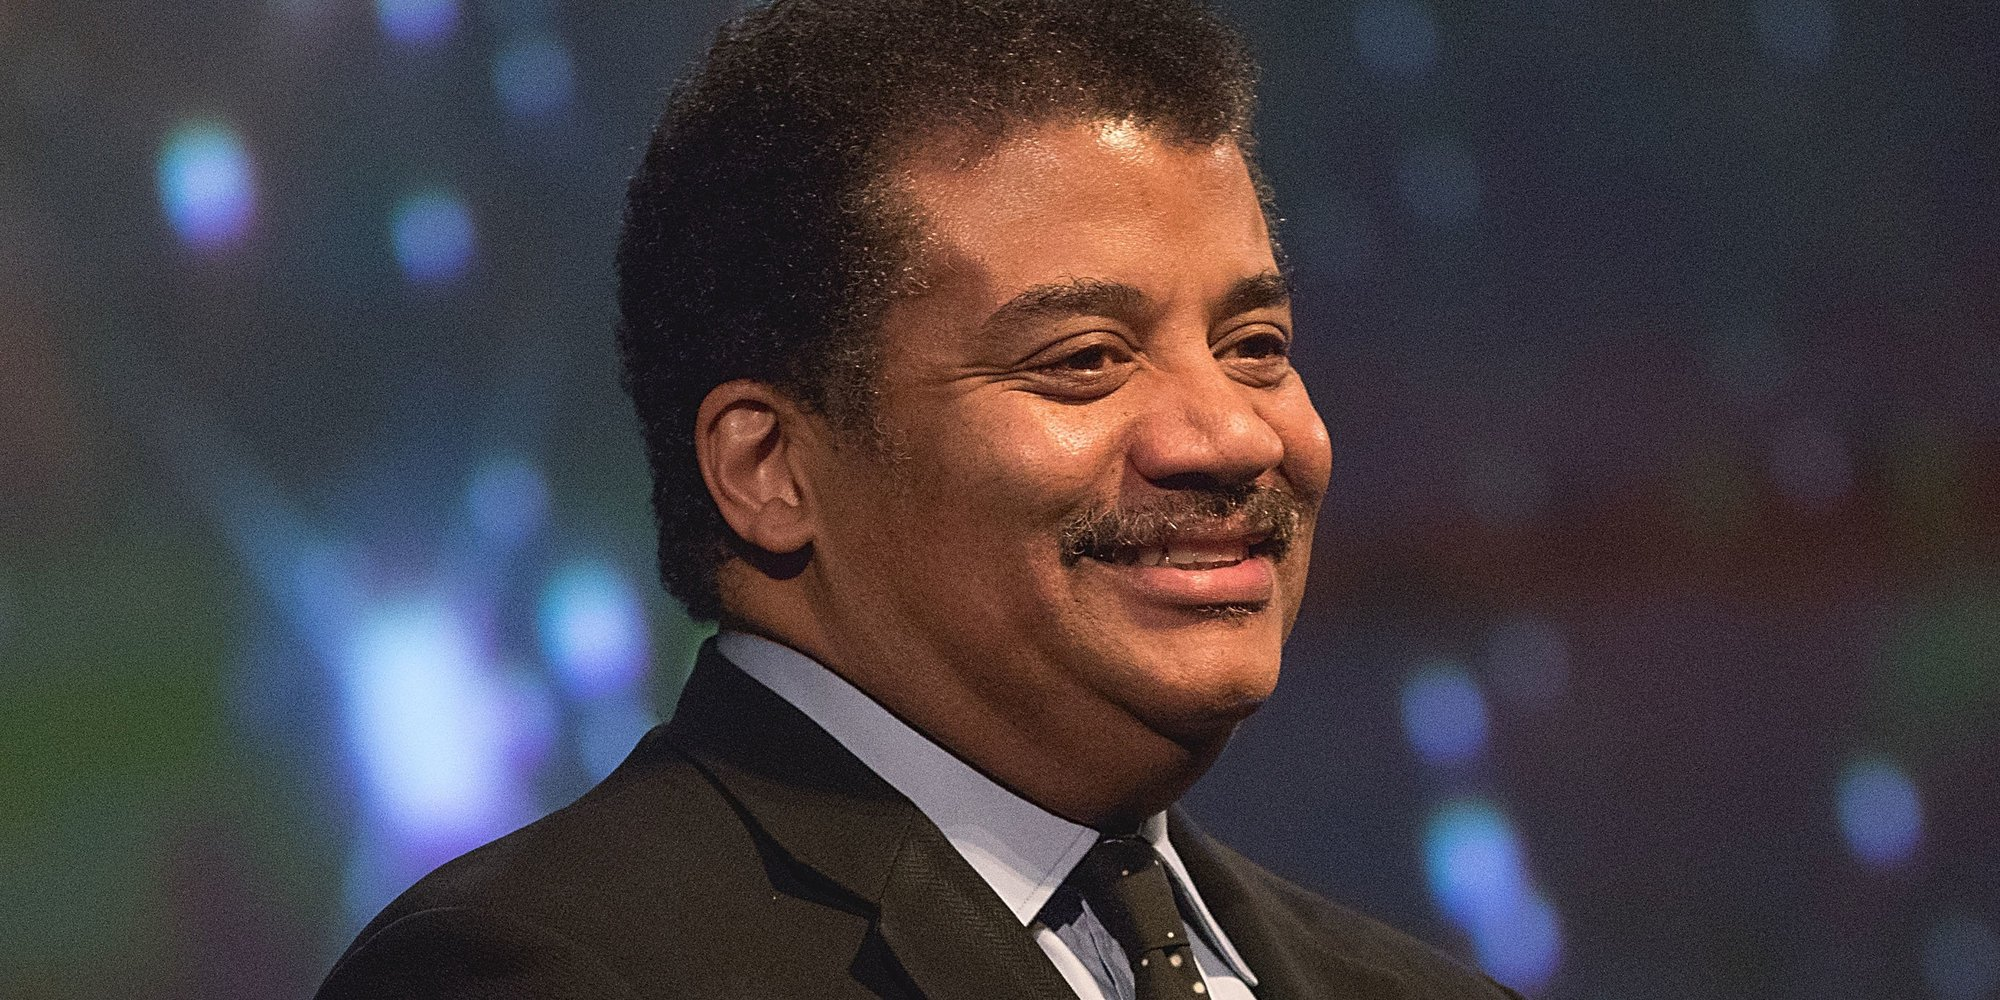 Neil deGrasse Tyson: Trump's budget will make America weak, sick & stupid https://t.co/9Xlt9bcVcY https://t.co/c5xVP7q6SU